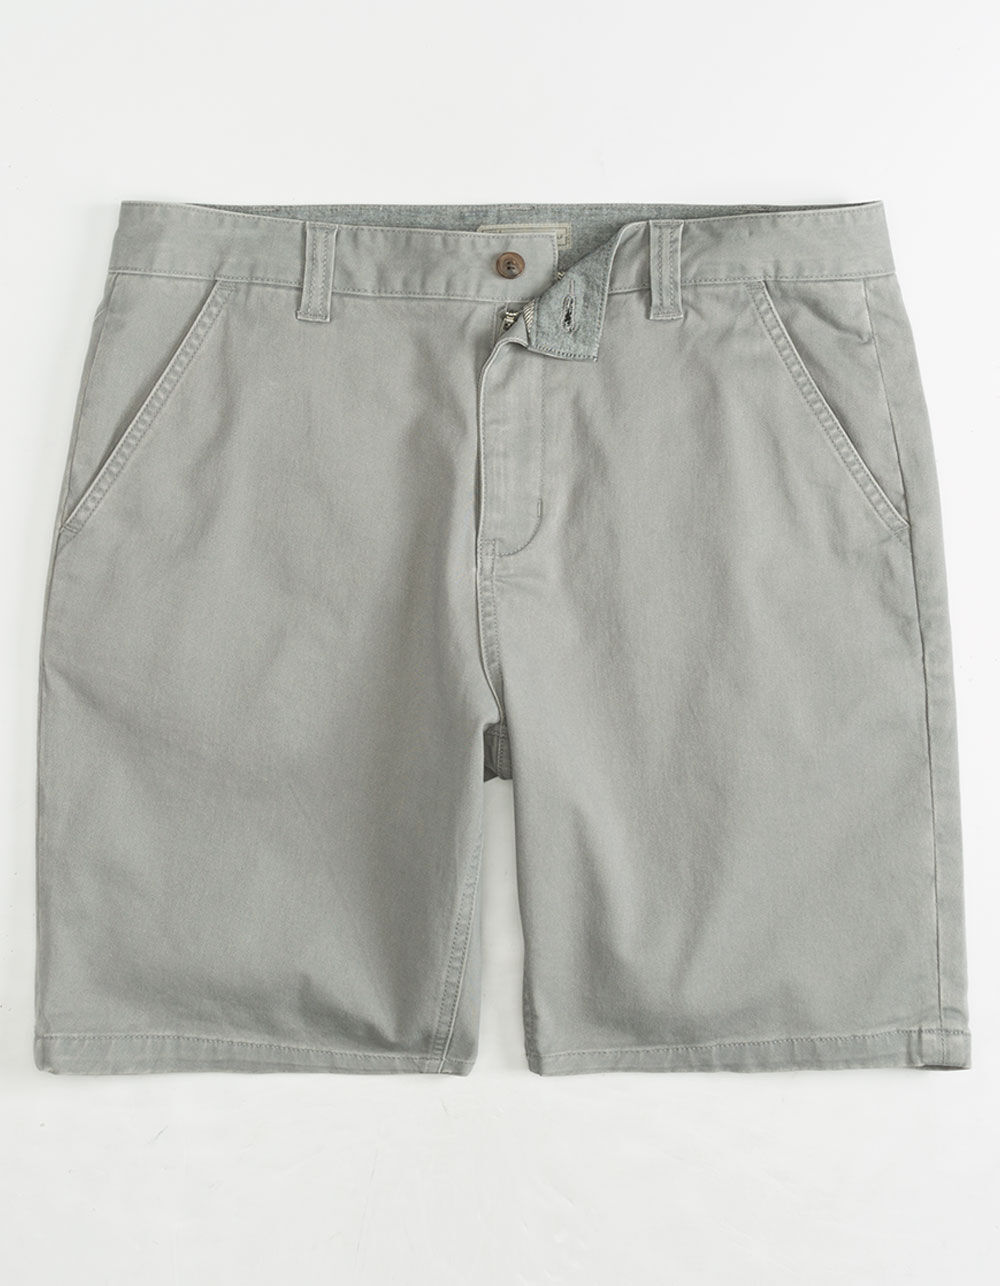 CHARLES AND A HALF Lincoln Stretch Grey Shorts